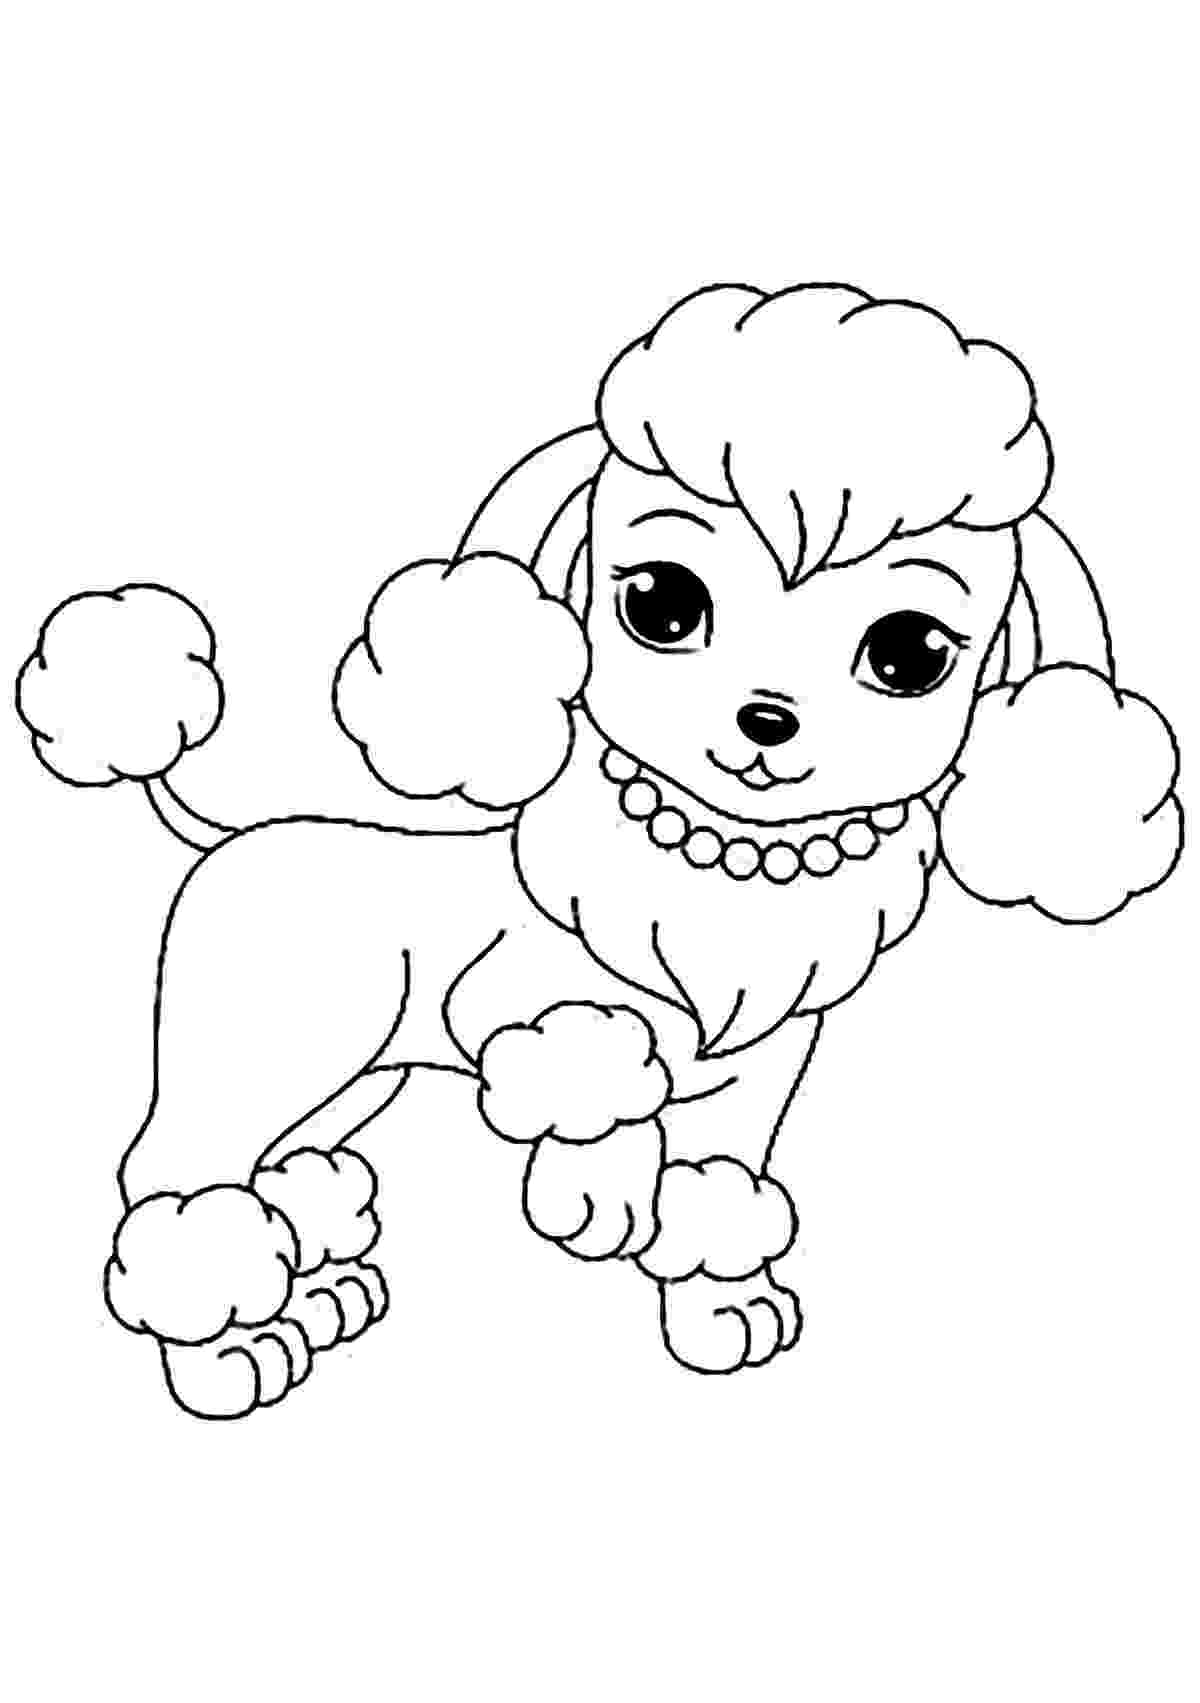 free dog coloring sheets clifford the big red dog coloring pages dog coloring free sheets dog coloring